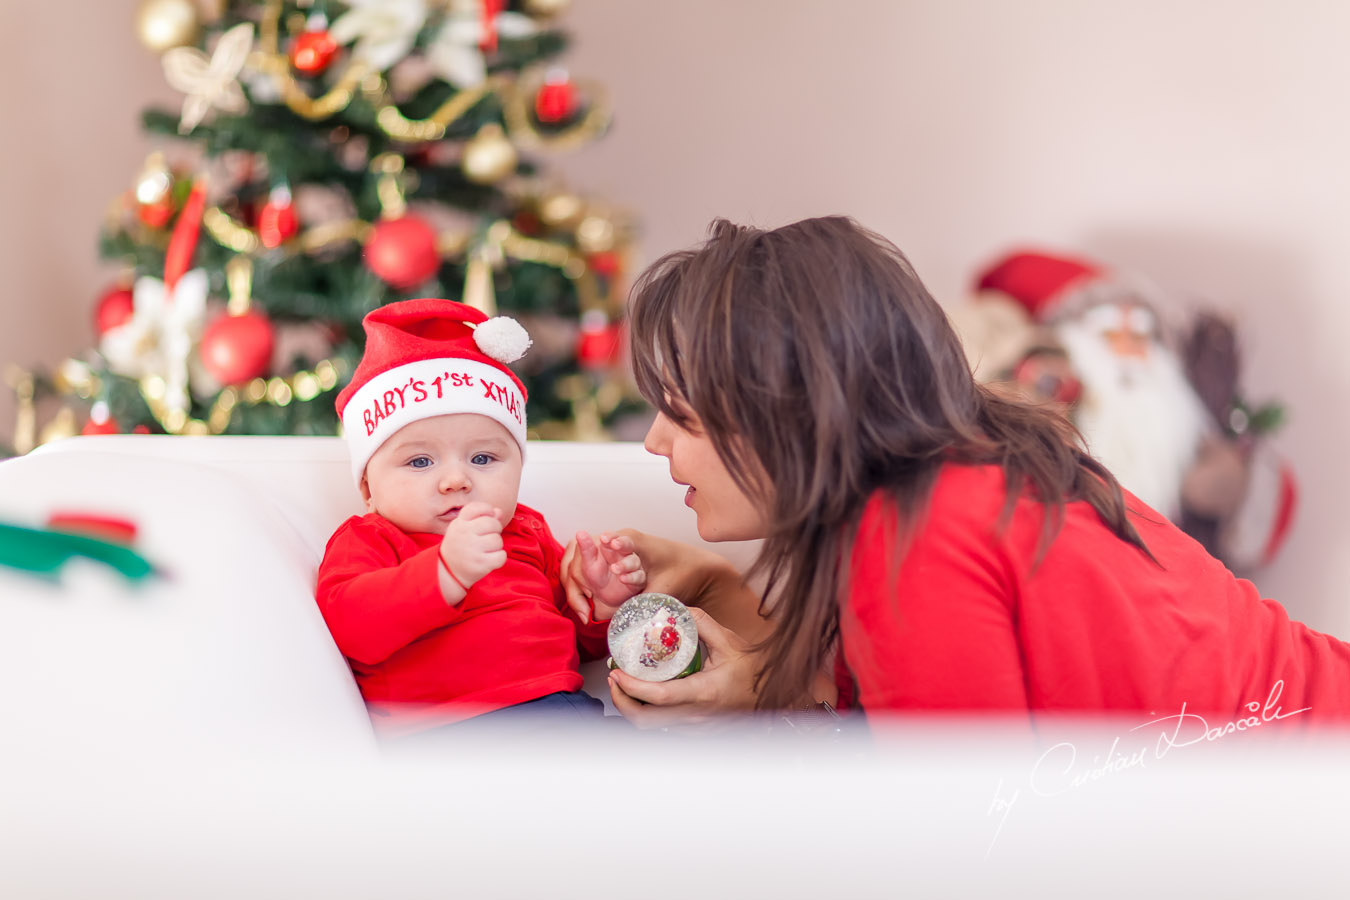 Christmas Family Photos in Cyprus. Photographer: Cristian Dascalu